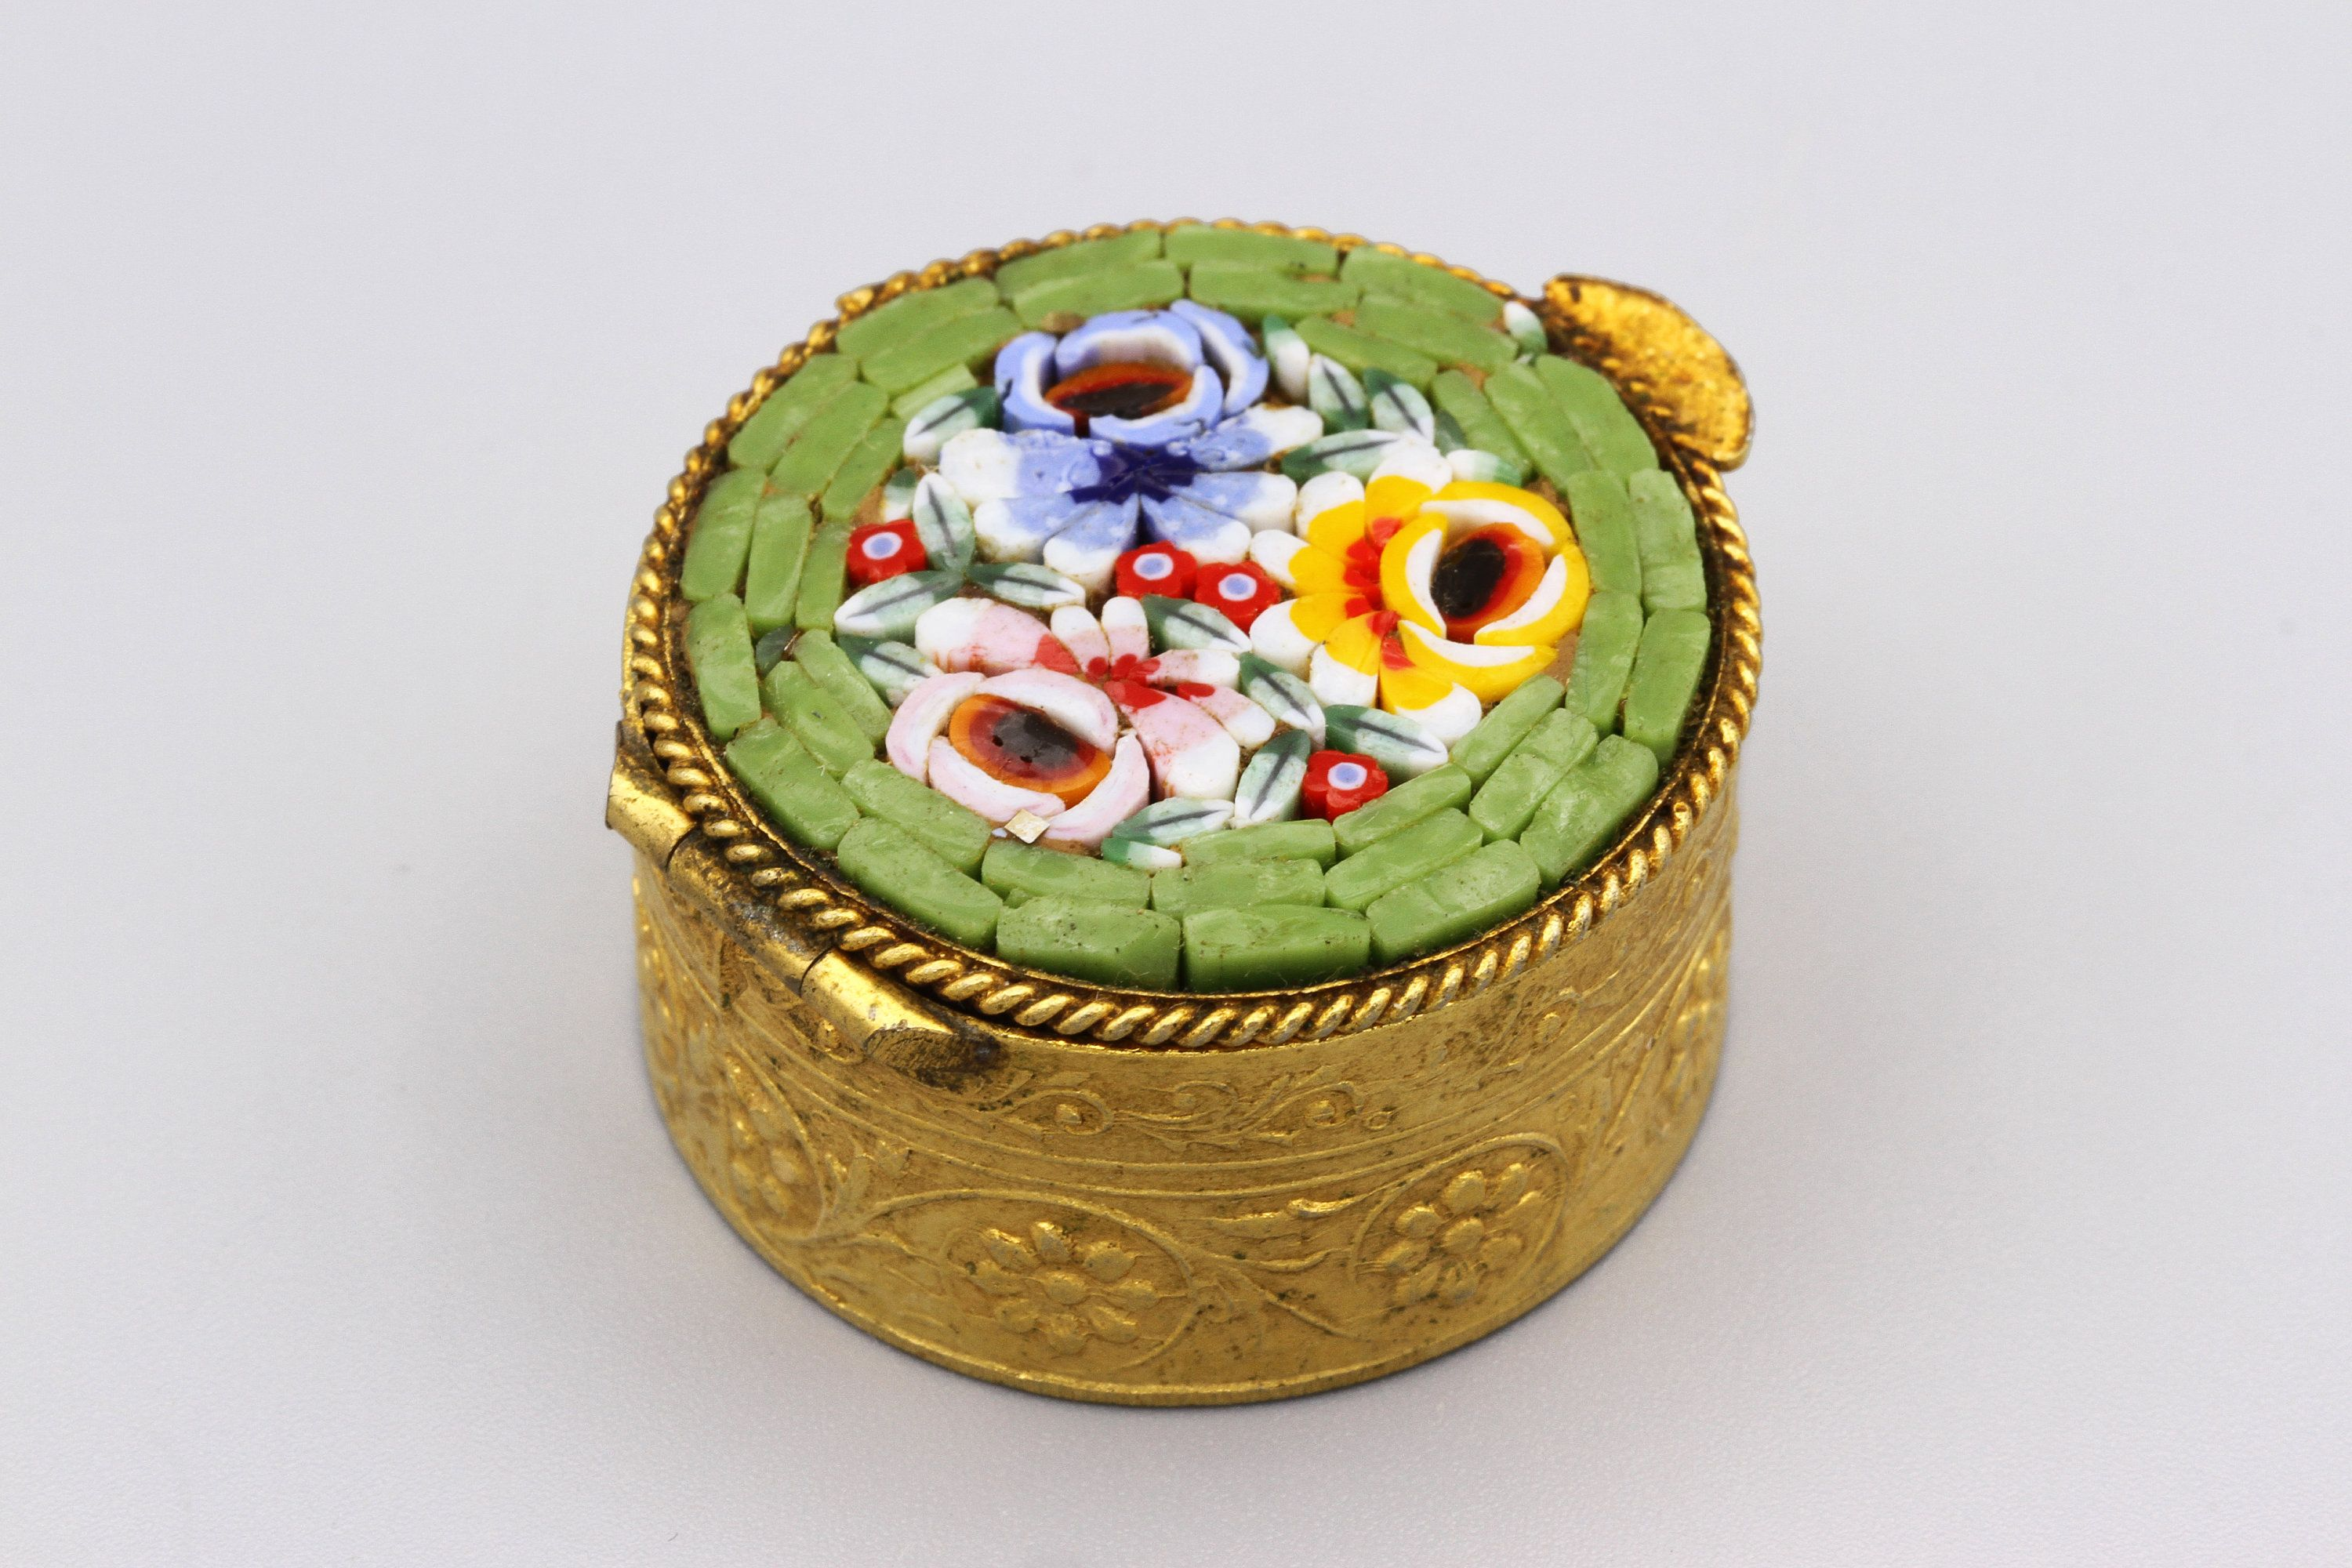 Chinese snuff pill box Vintage Enamel Trinket Box with Floral Embroidered Top perfect for a ring  gift!